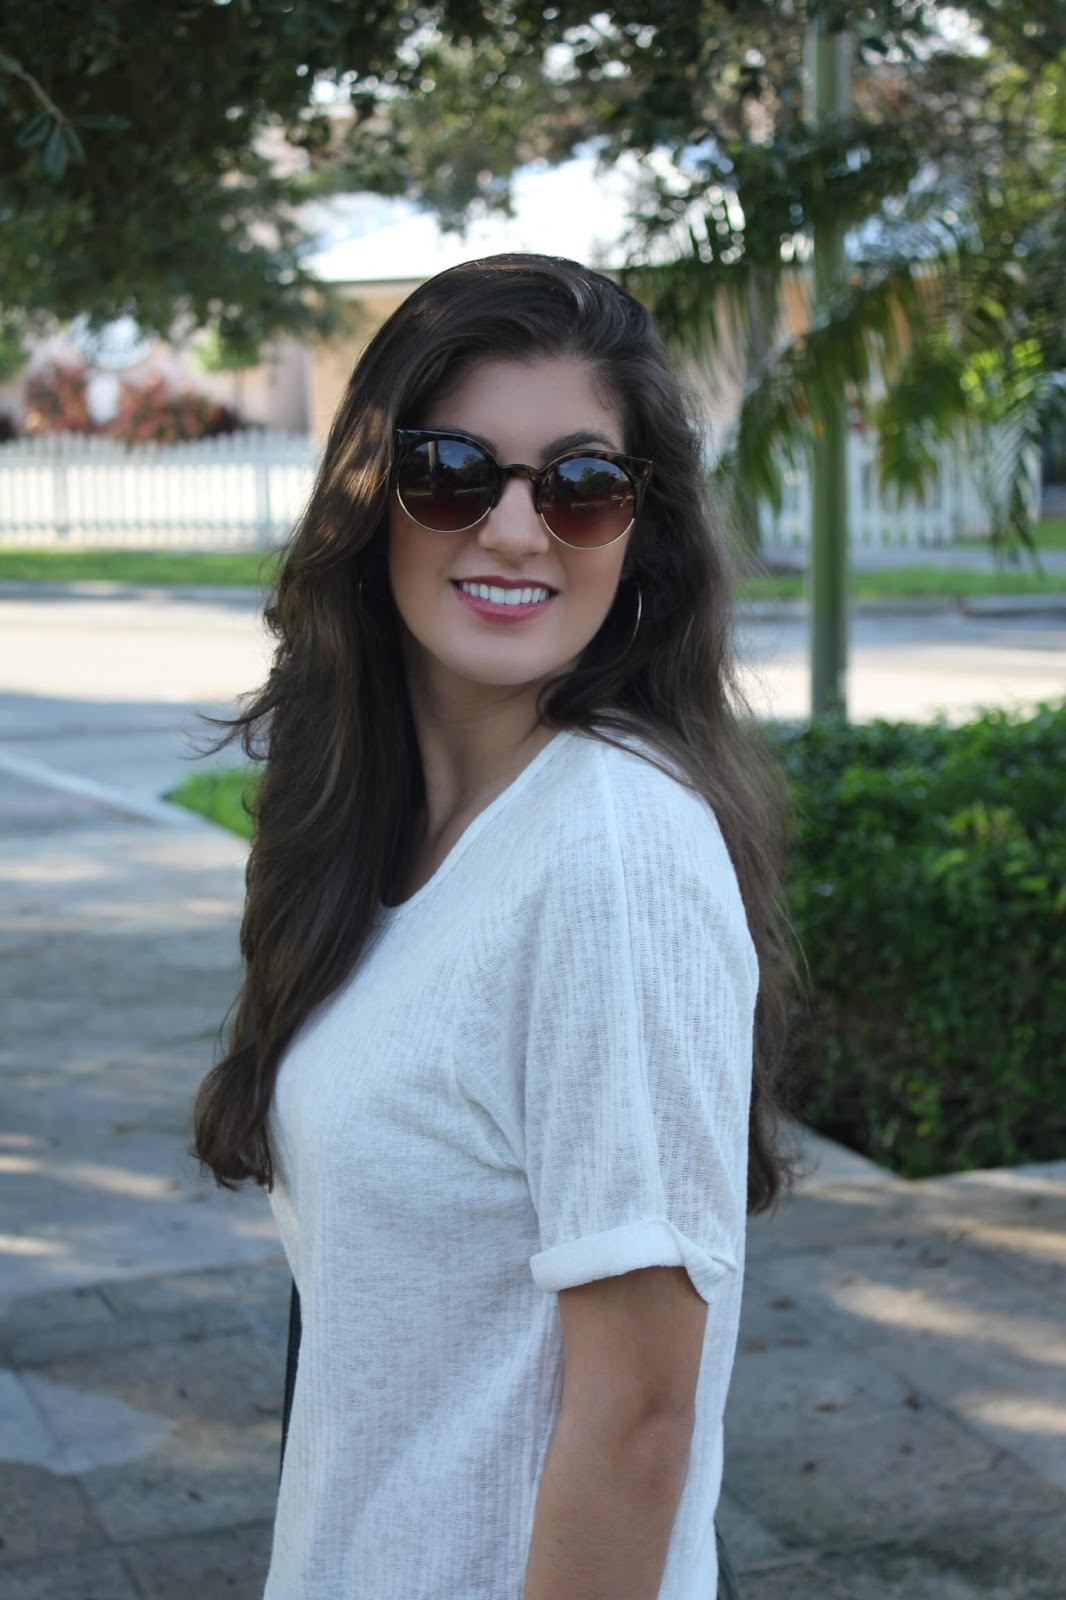 Fashion Tips for Styling Basic Pieces & Daily Makeup Products